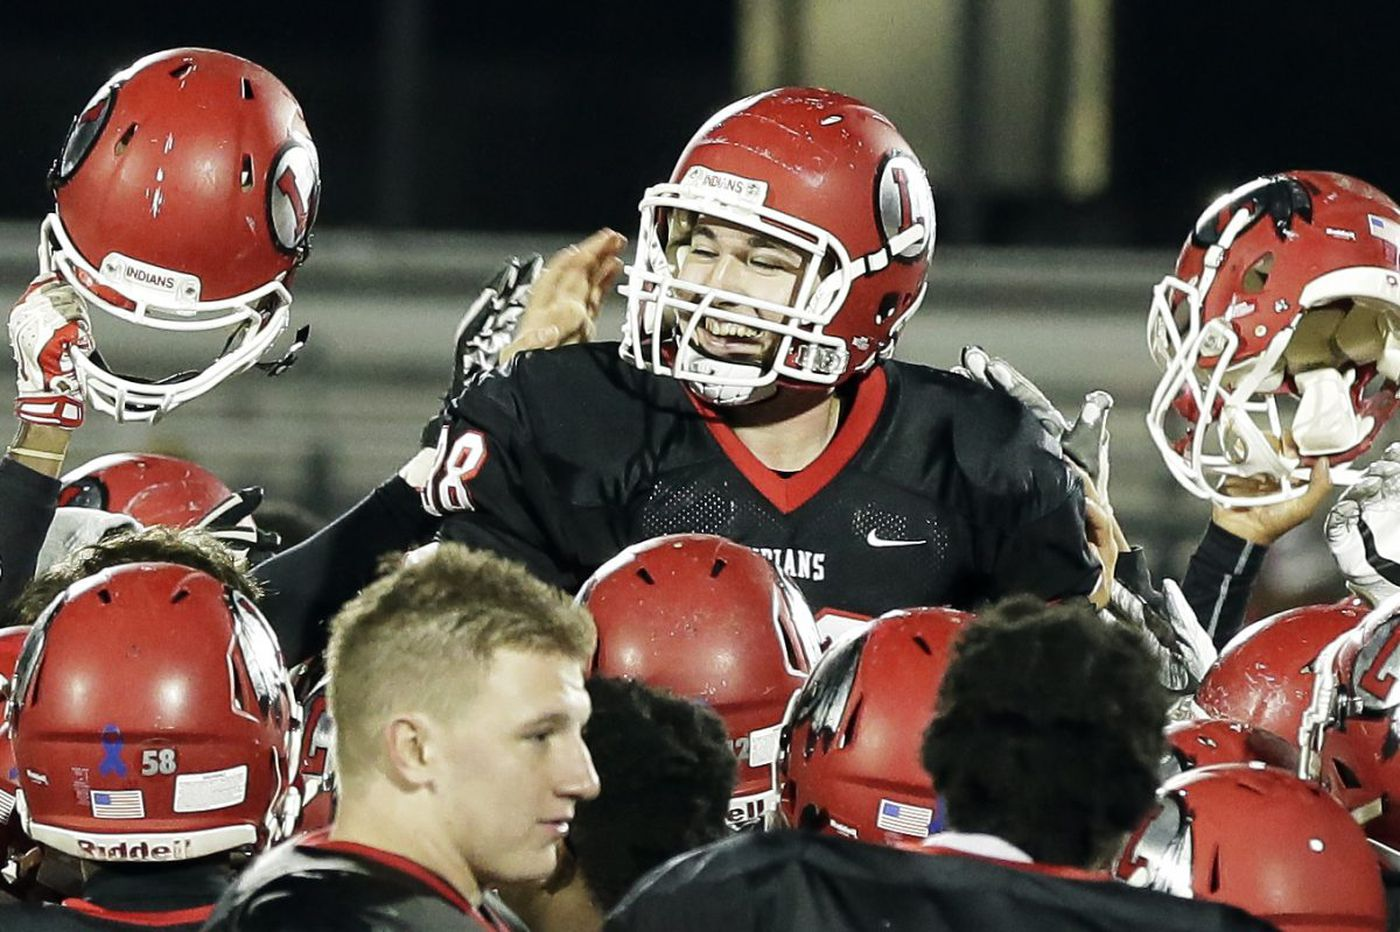 Indians stun Red Devils on late field goal to win Group 5 title